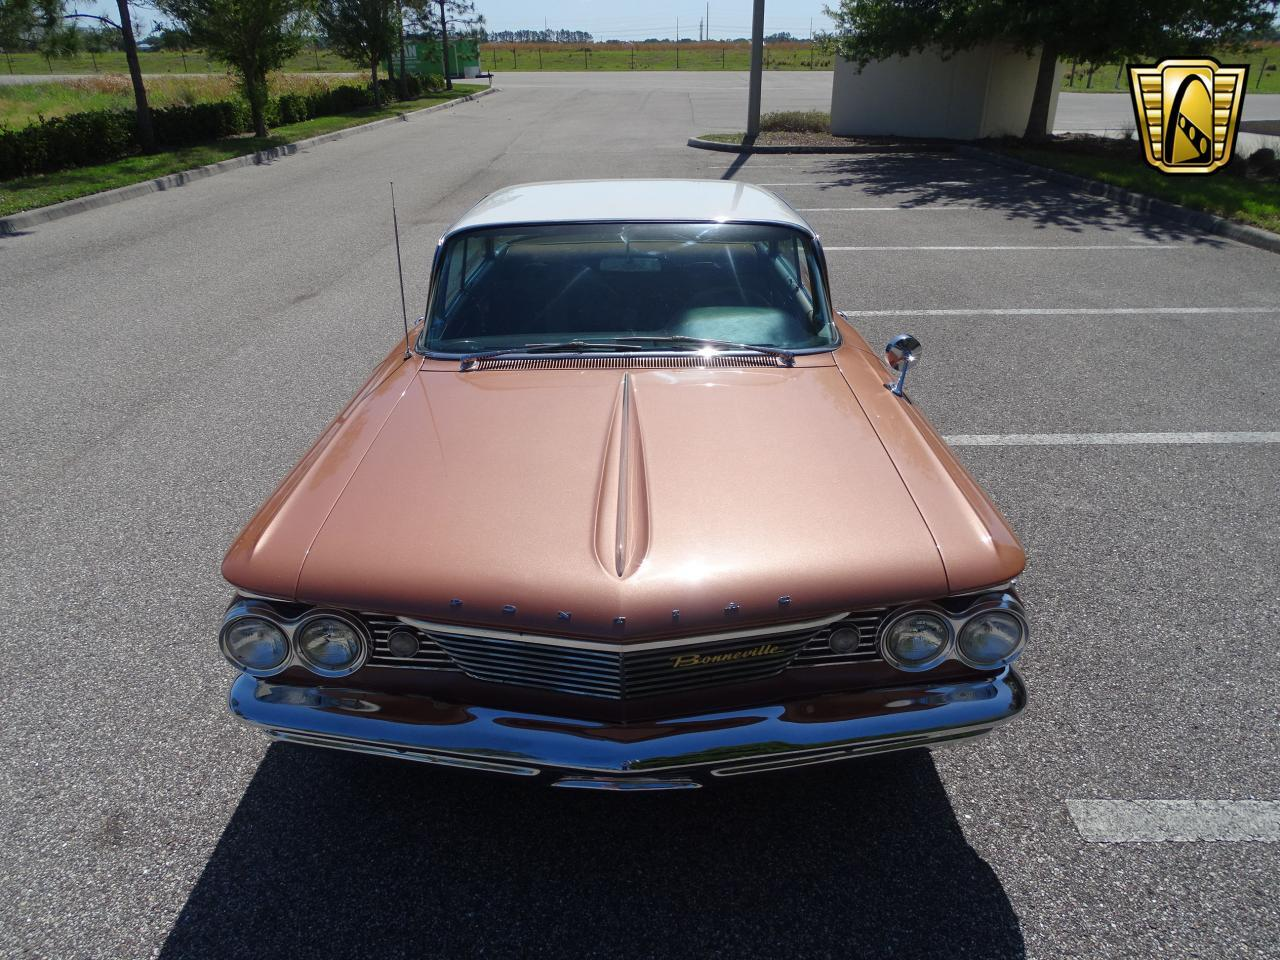 Large Picture of Classic 1960 Pontiac Bonneville located in Ruskin Florida - $26,995.00 - NCZ9